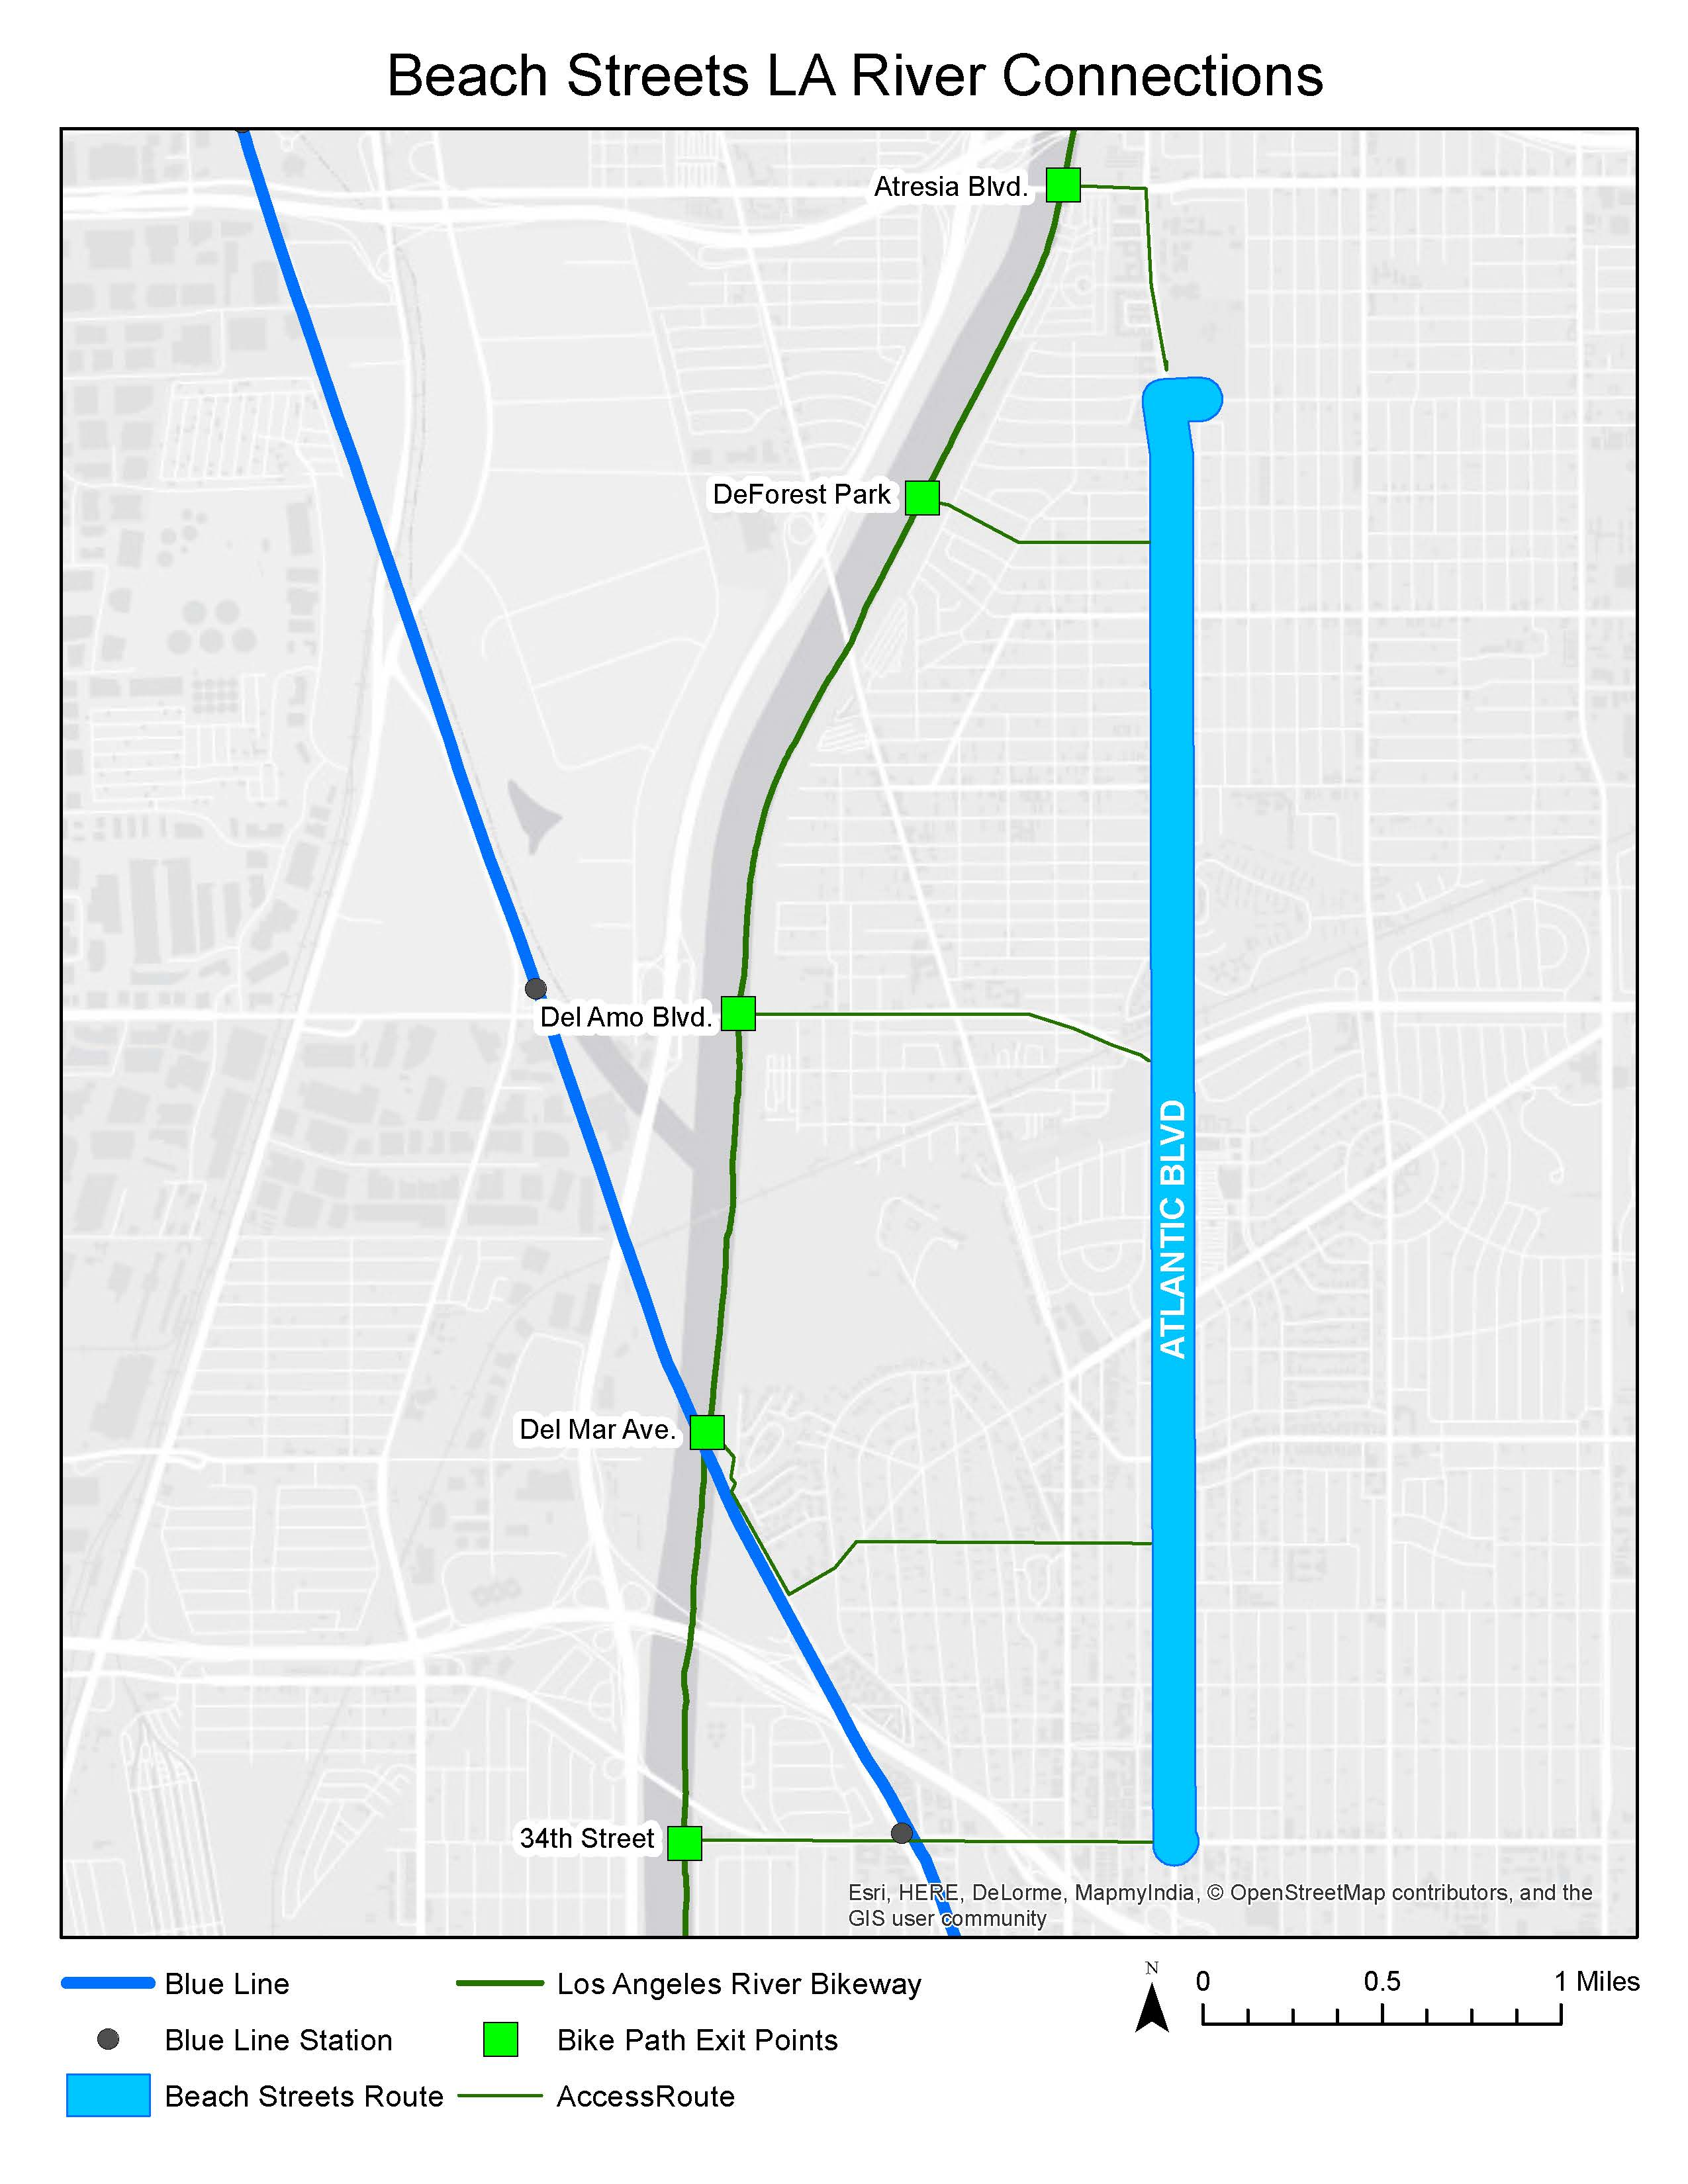 LB_OpenStreets_LARiver_Connections